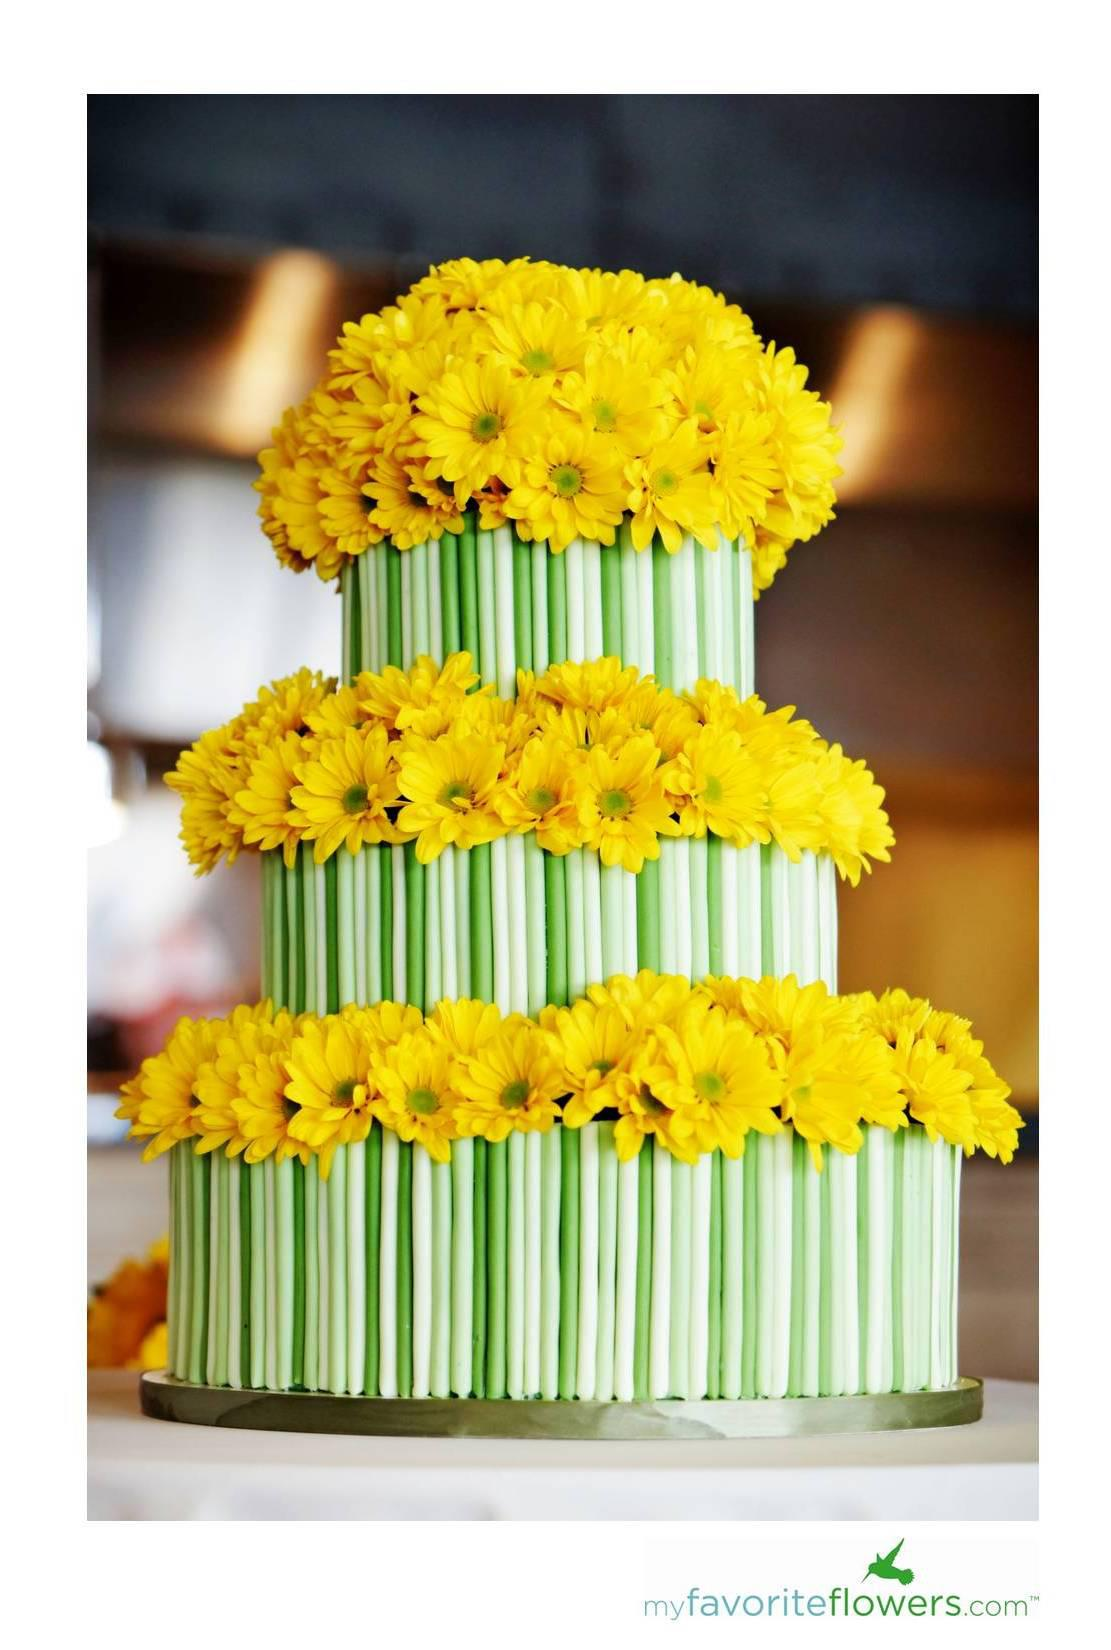 Flower advice tips on putting fresh flowers on the wedding cake flower advice tips on putting fresh flowers on the wedding cake my favorite flowers blog floral trends for weddings and special occasions mightylinksfo